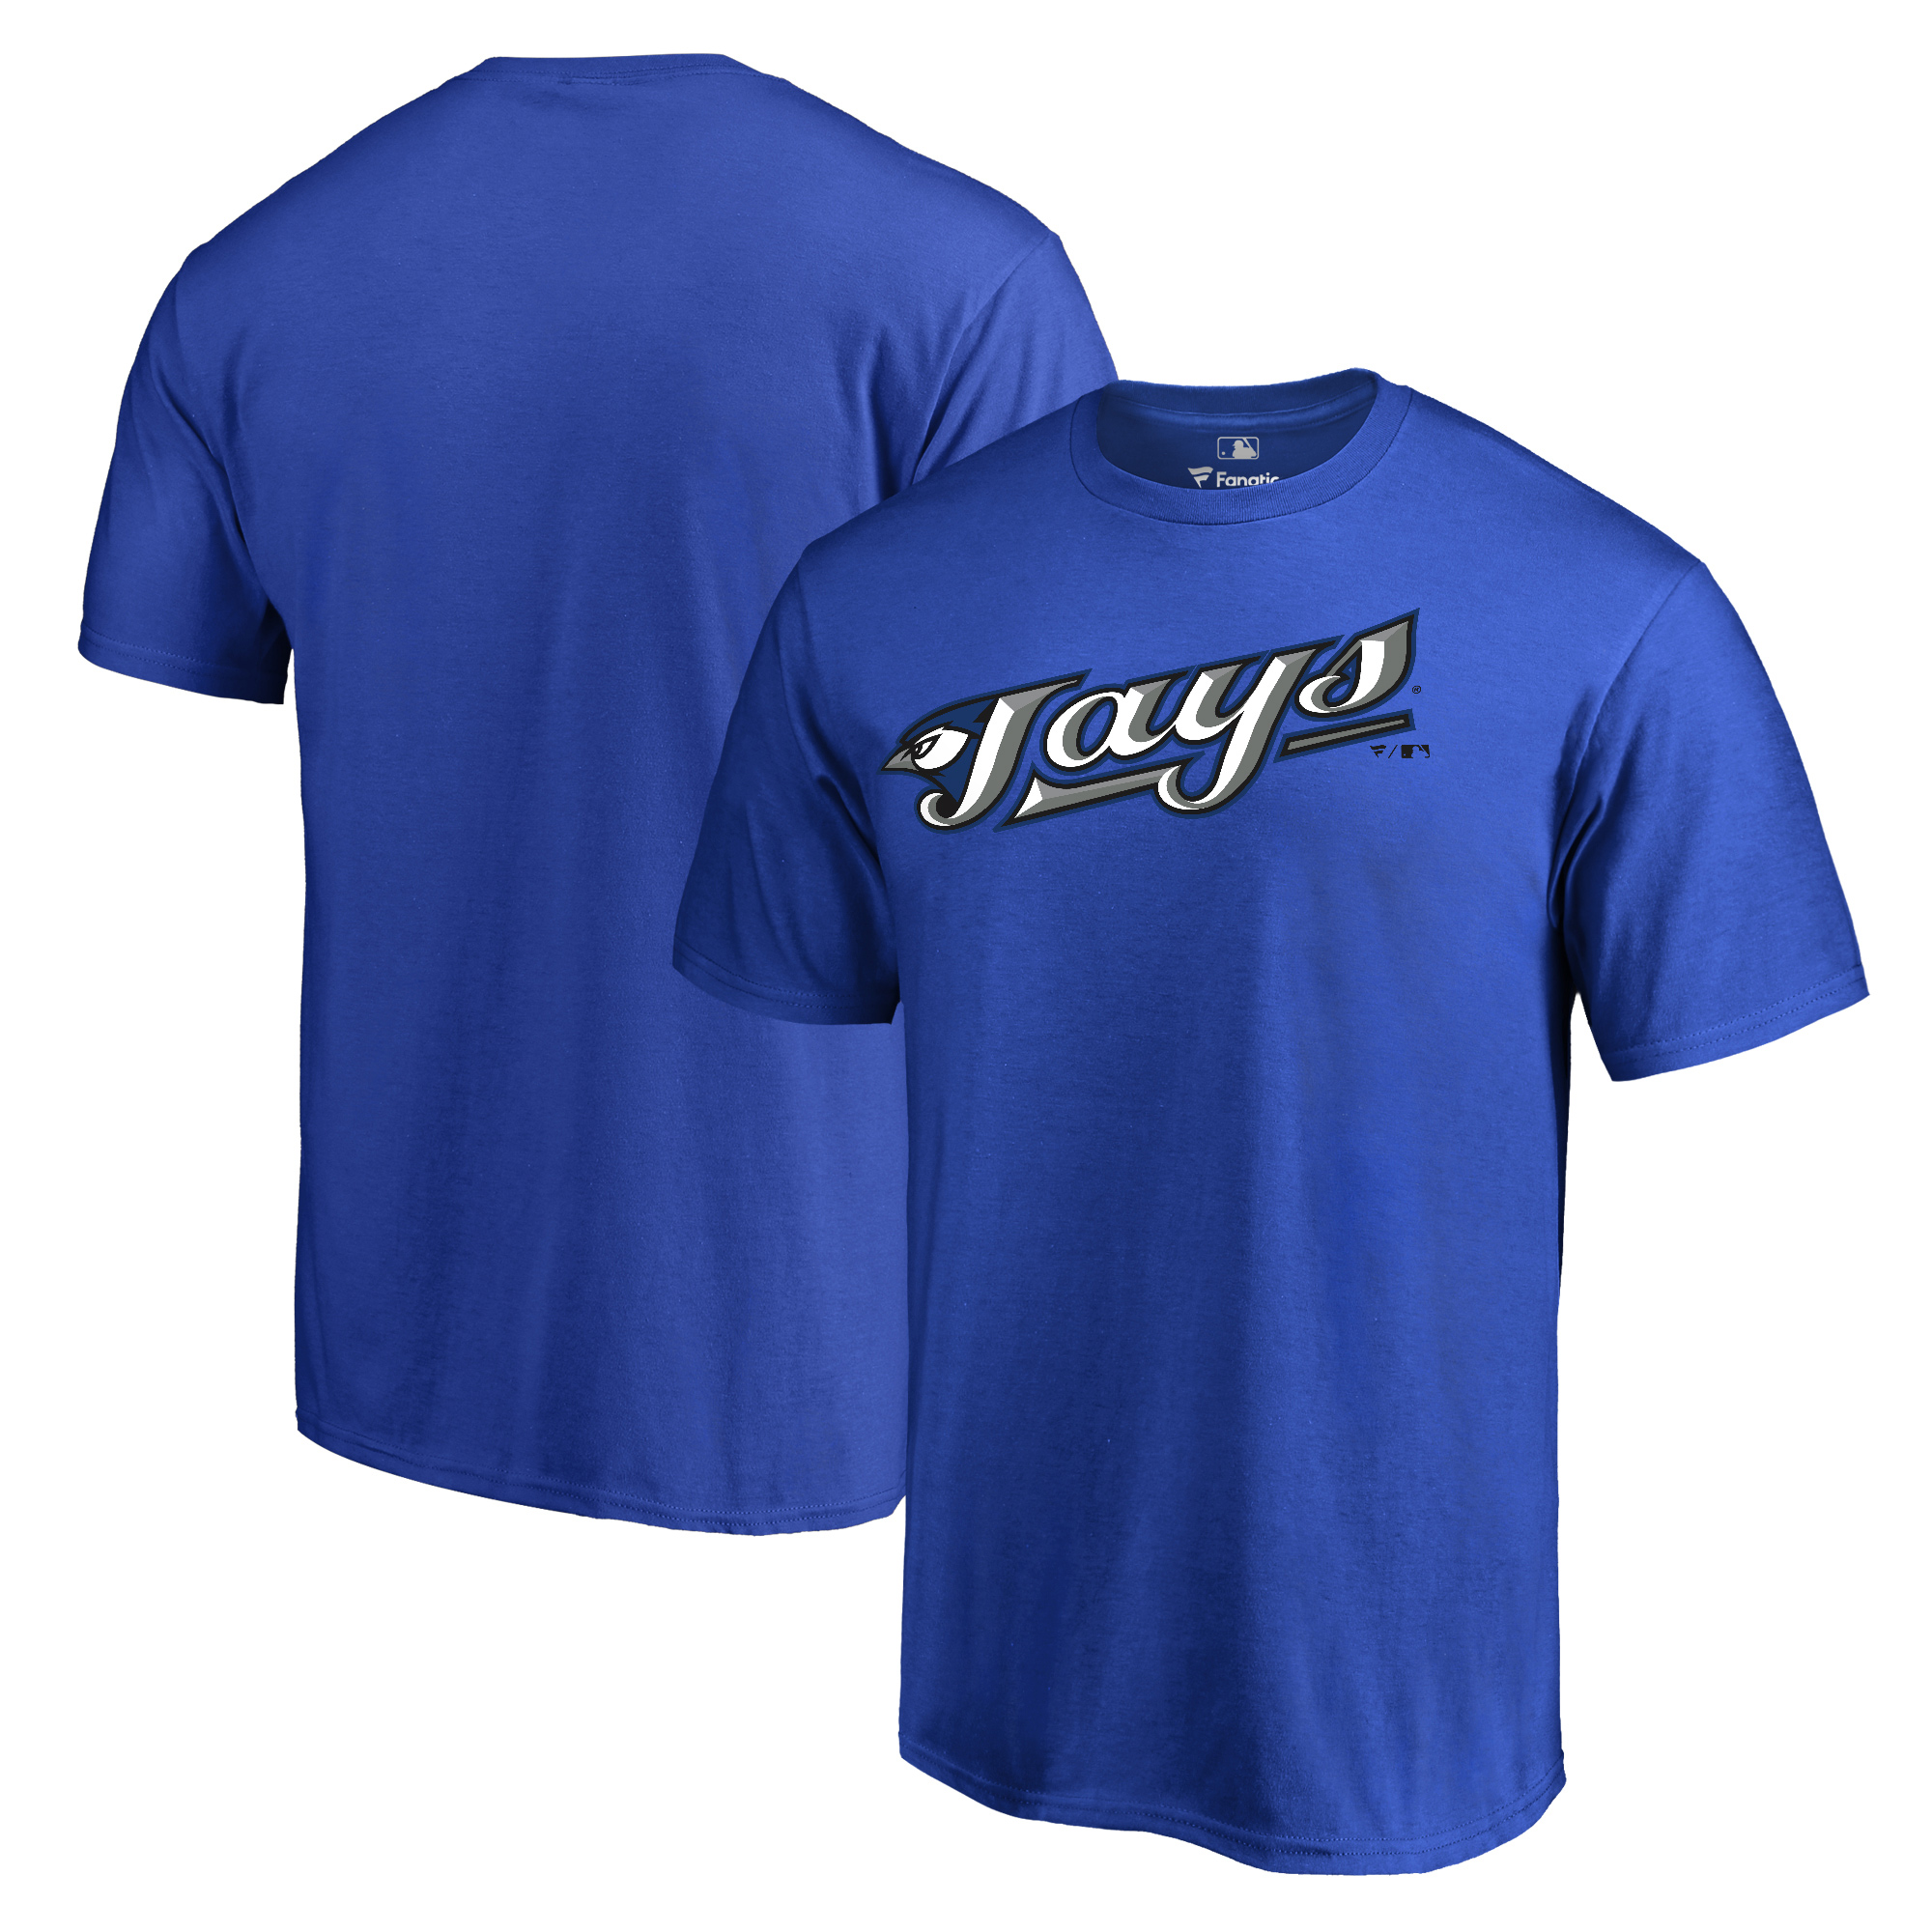 Toronto Blue Jays Fanatics Branded Cooperstown Collection Wahconah T-Shirt - Royal